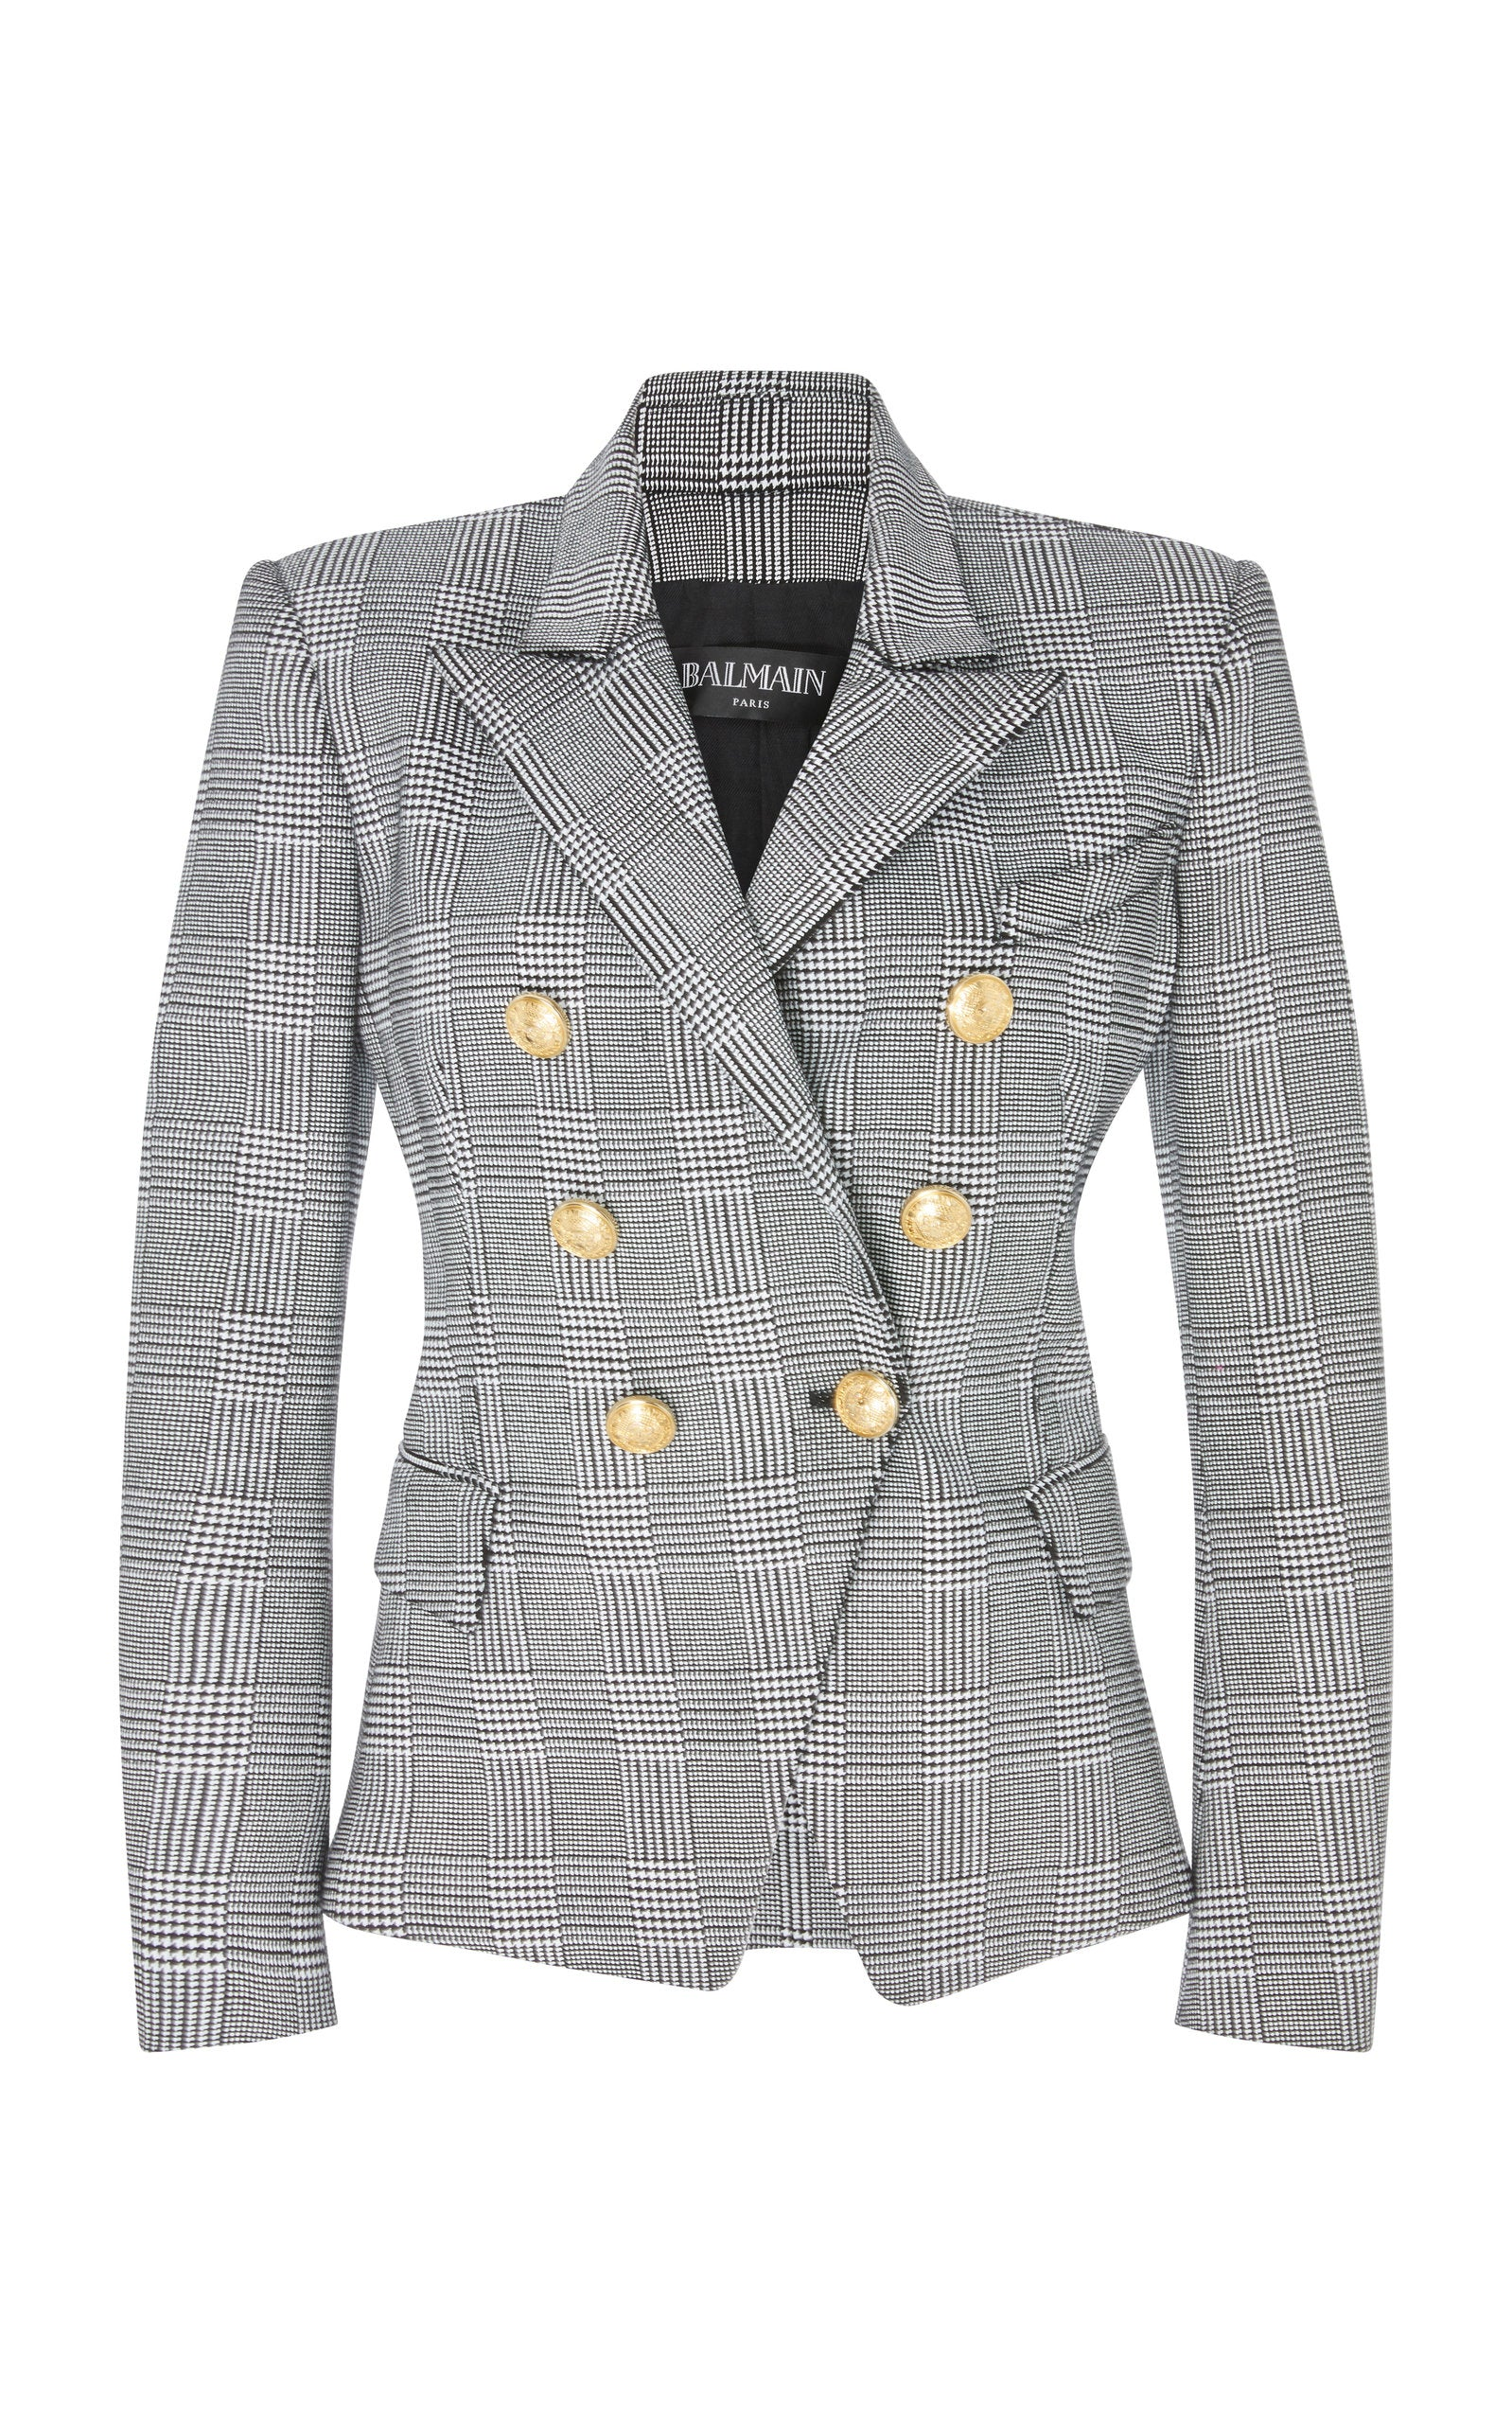 Balmain ginham blazer - Iconics Preloved Luxury